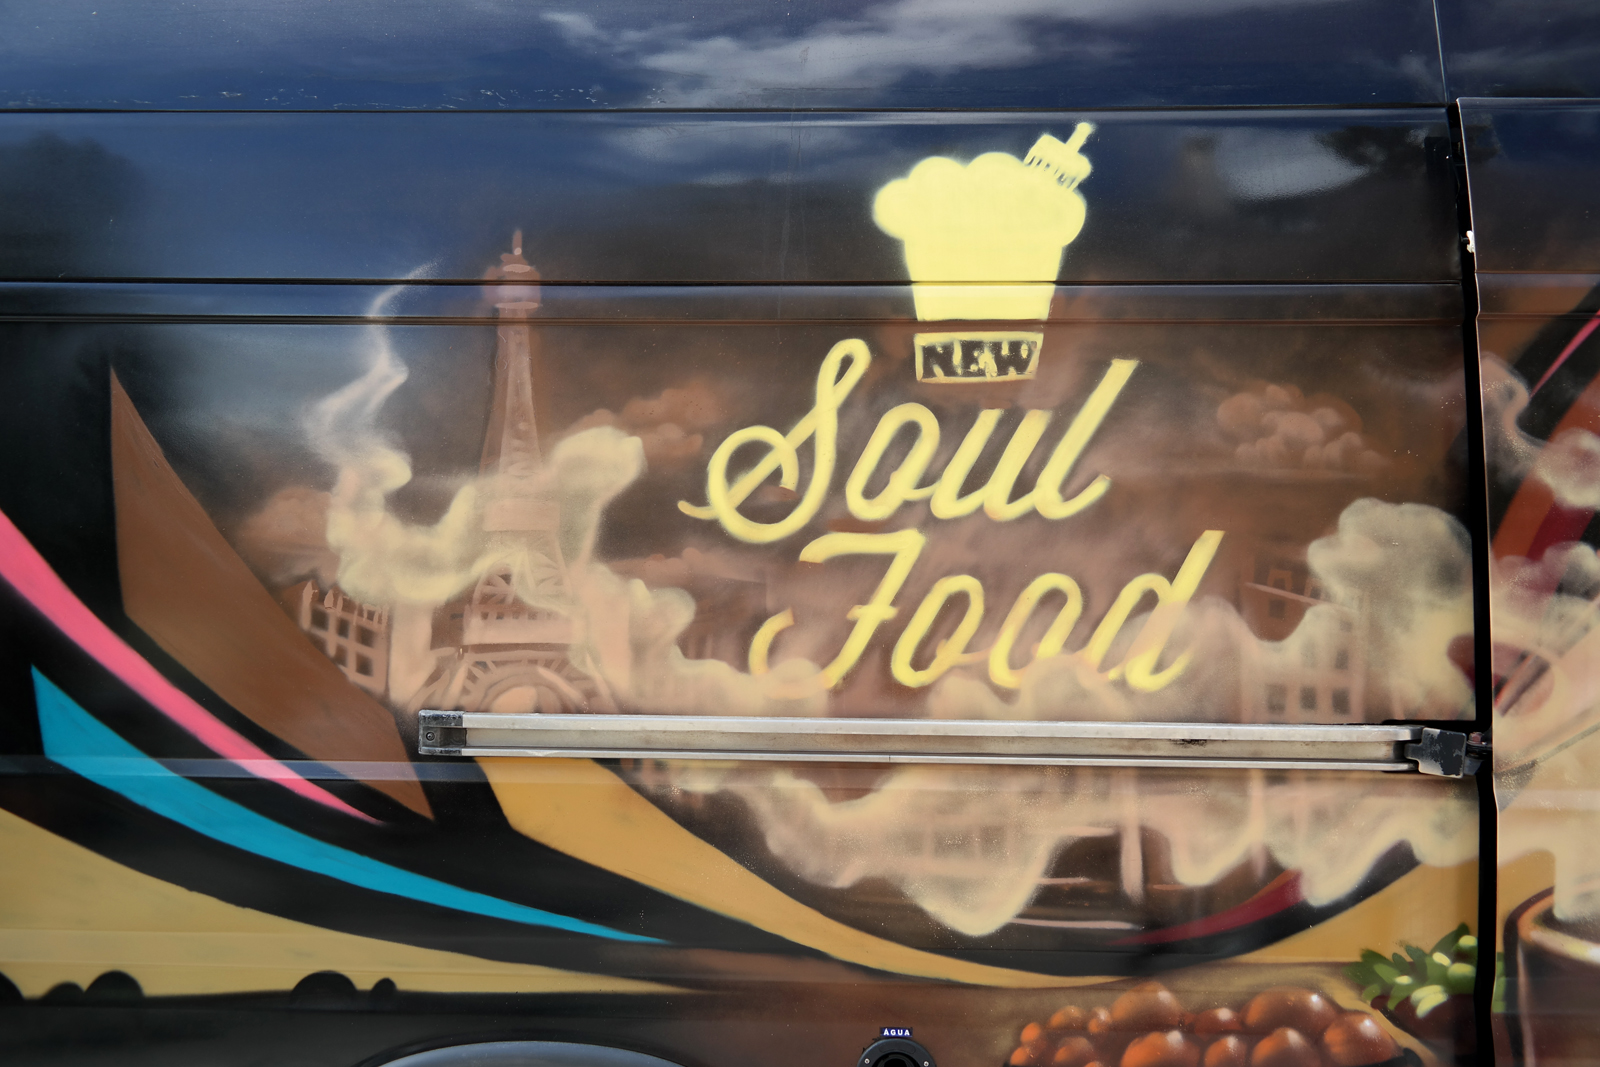 New Soul Food truck by Rudy Laine camion graffé pour cuisine afro-disiaque graffiti rue de la ville photo united states of paris blog